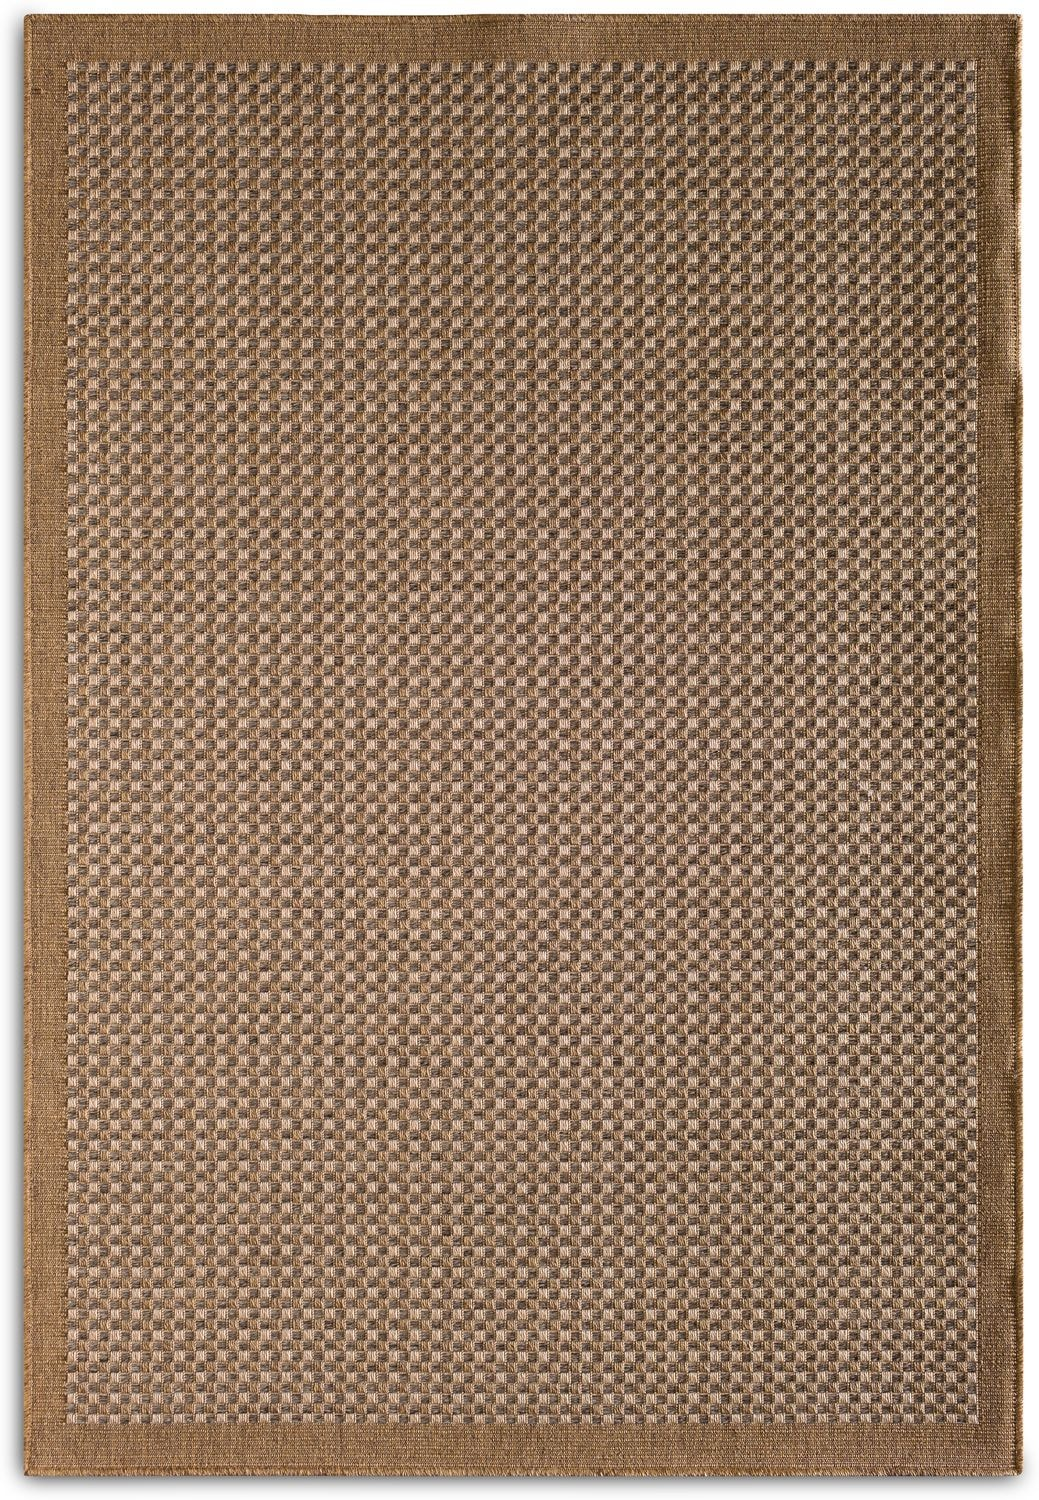 Outdoor Furniture - Basket Indoor/Outdoor Rug - Brown